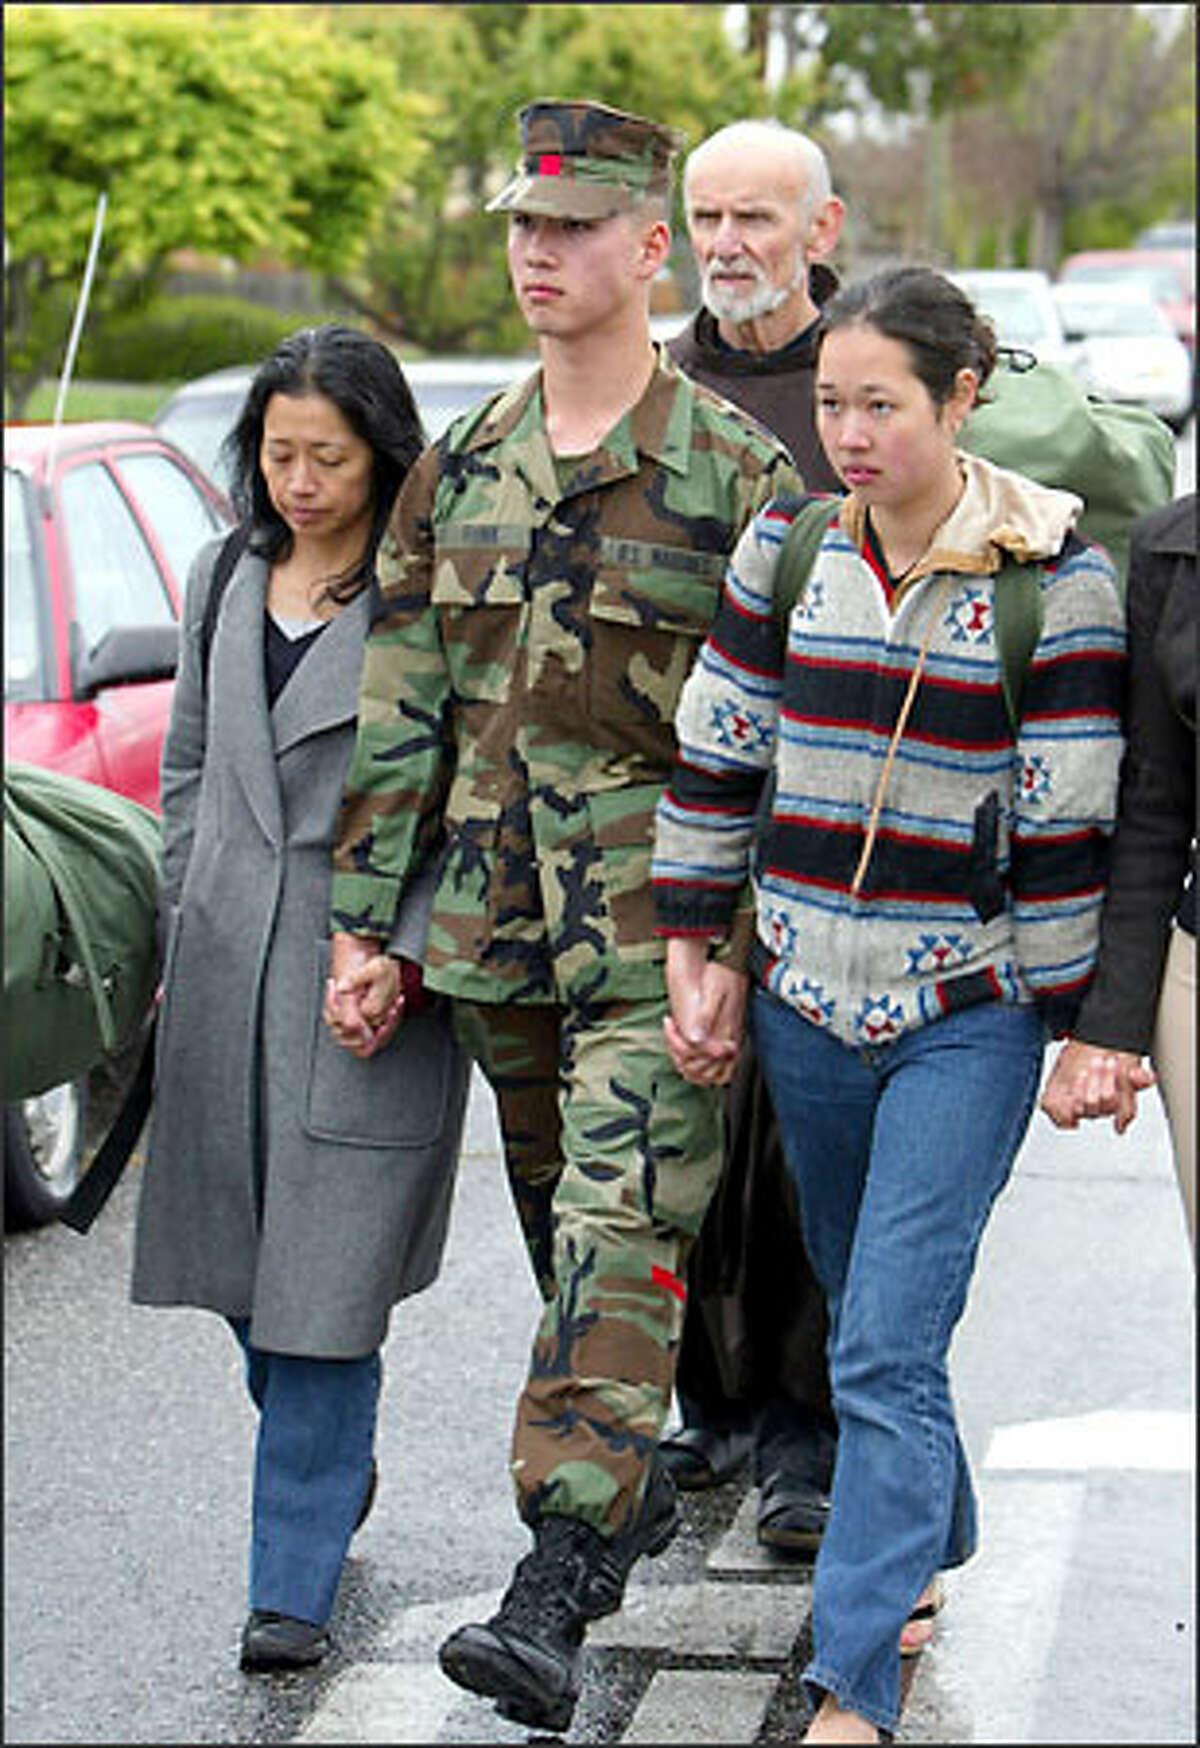 Marine Corps reservist Stephen Funk, center, walks with his mother, Gloria Pacis, left, and sister Caitlin Funk to turn himself in at his reserve unit in San Jose, Calif.